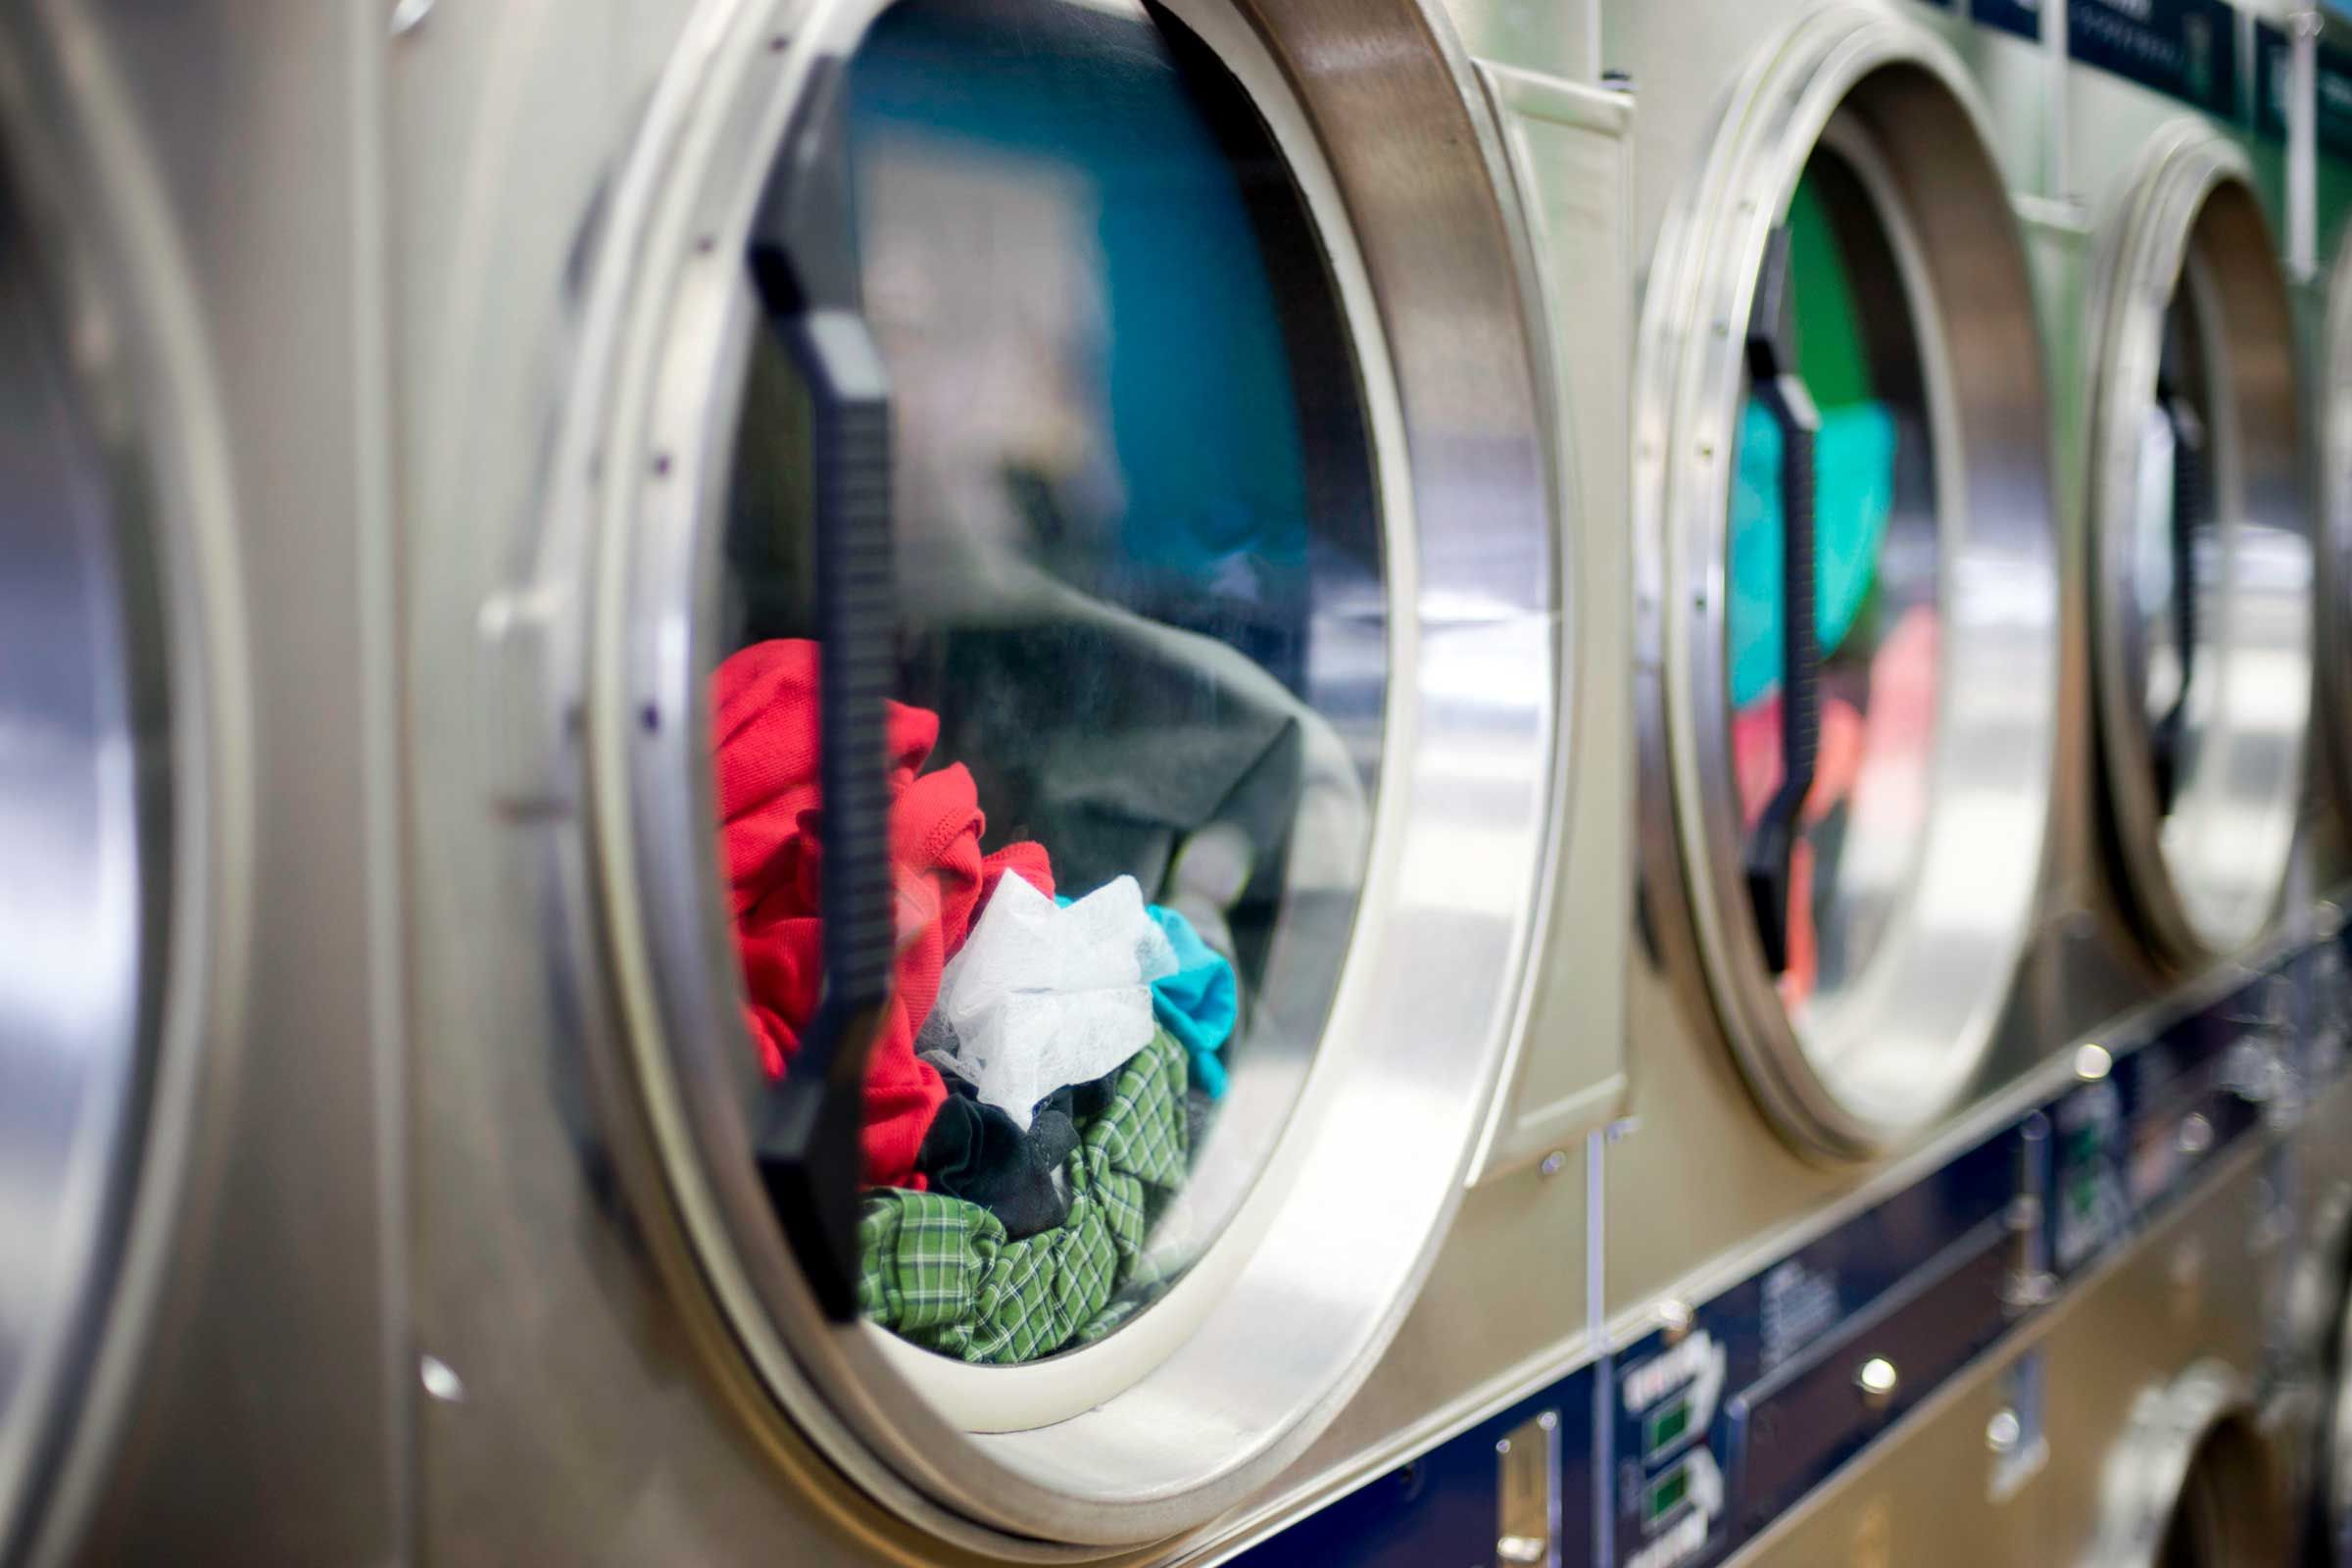 Advantages of working with a professional laundry service